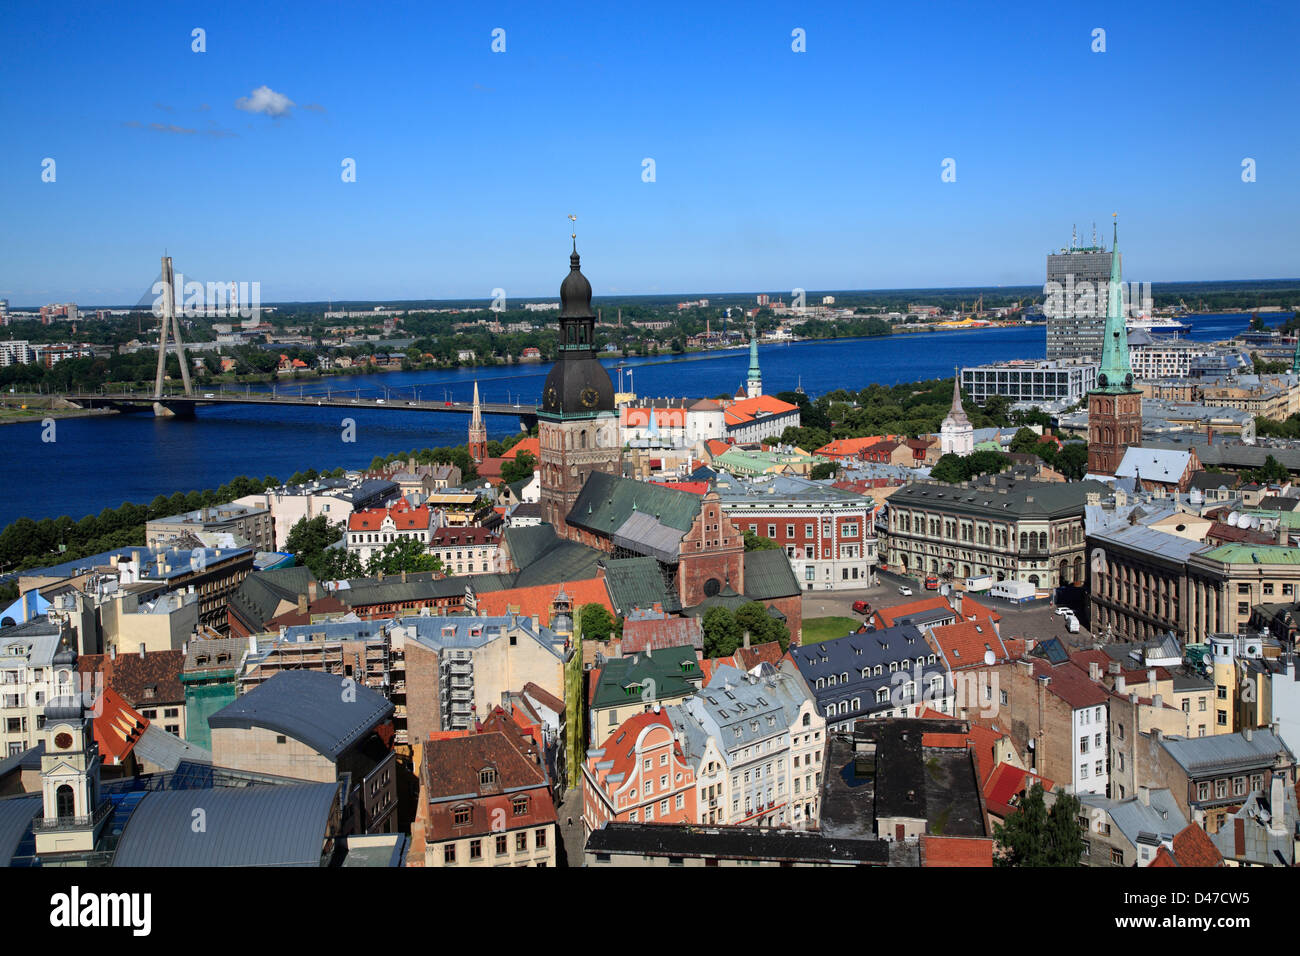 View from St. Peter Church to the Old Town of Riga and river Daugava (Duena), Latvia - Stock Image